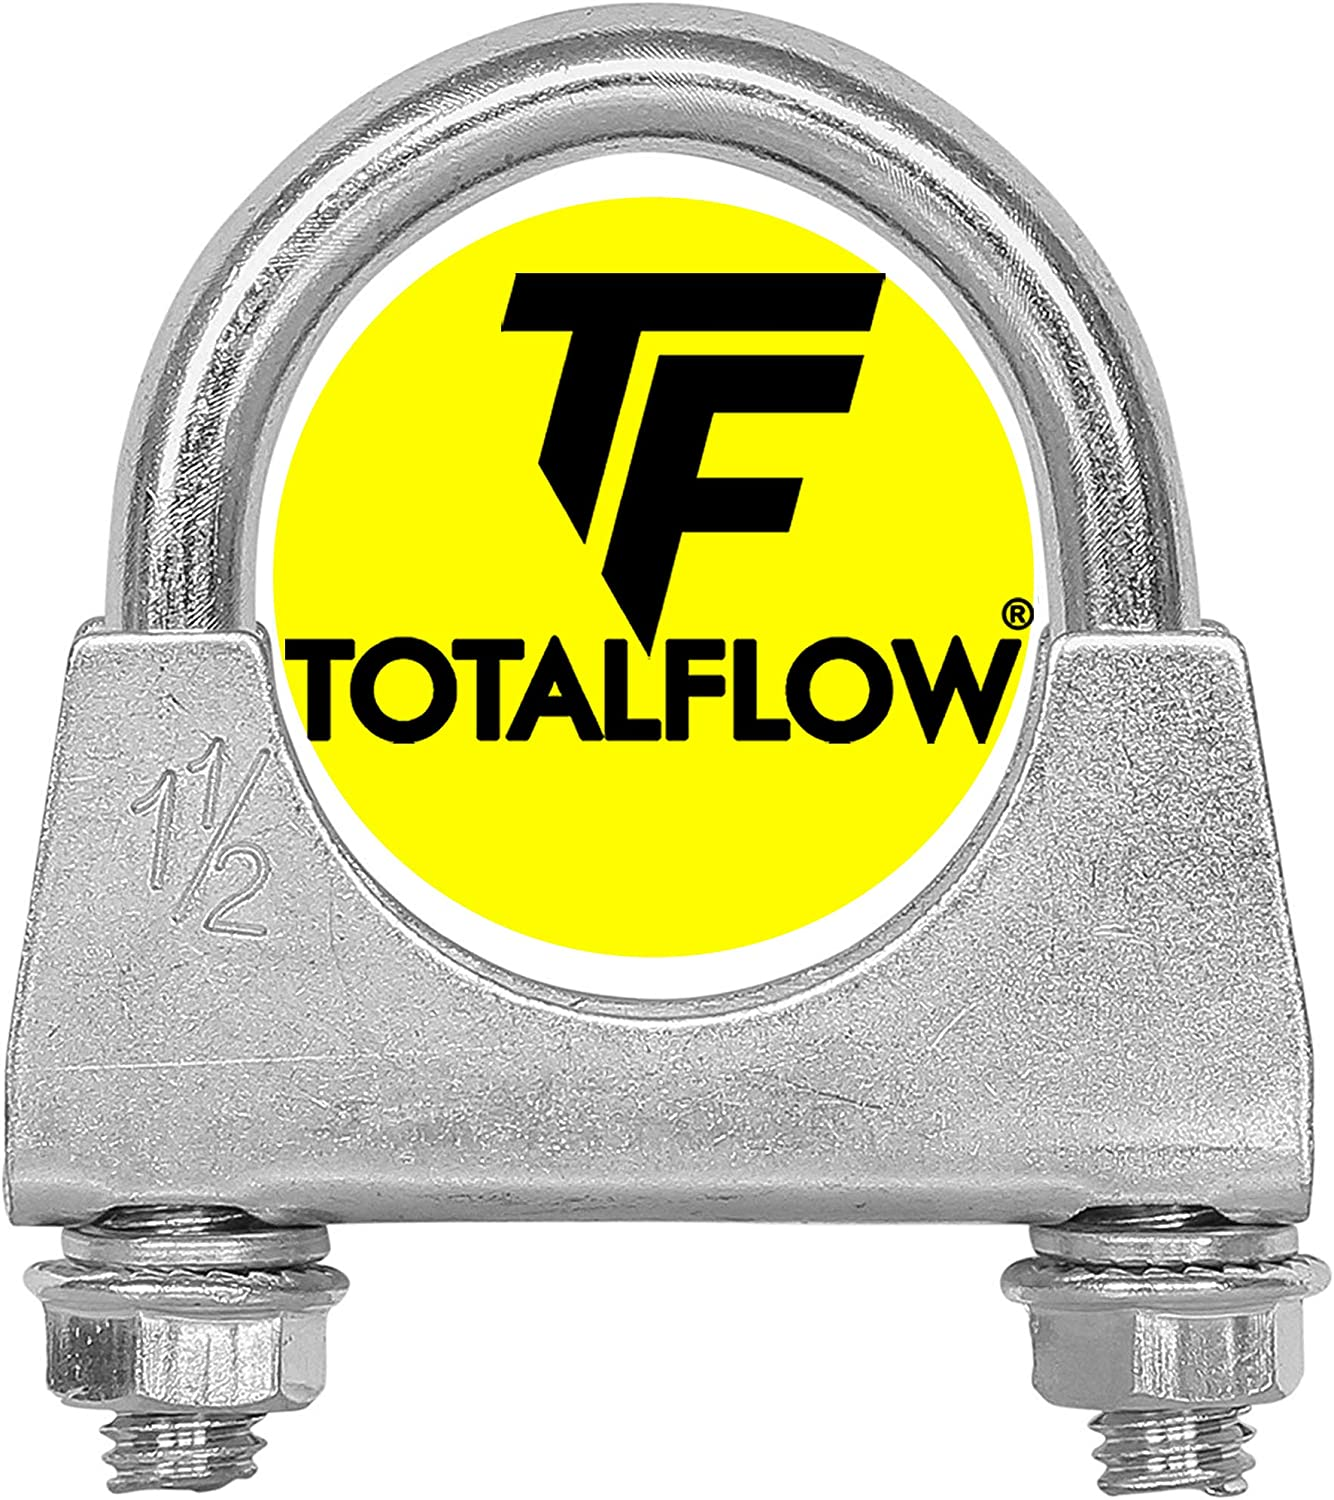 TOTALFLOW Natural Finish 3.25 TF-U325 304 Stainless Steel Saddle U-Bolt Exhaust Muffler Clamp-3.25 Inch